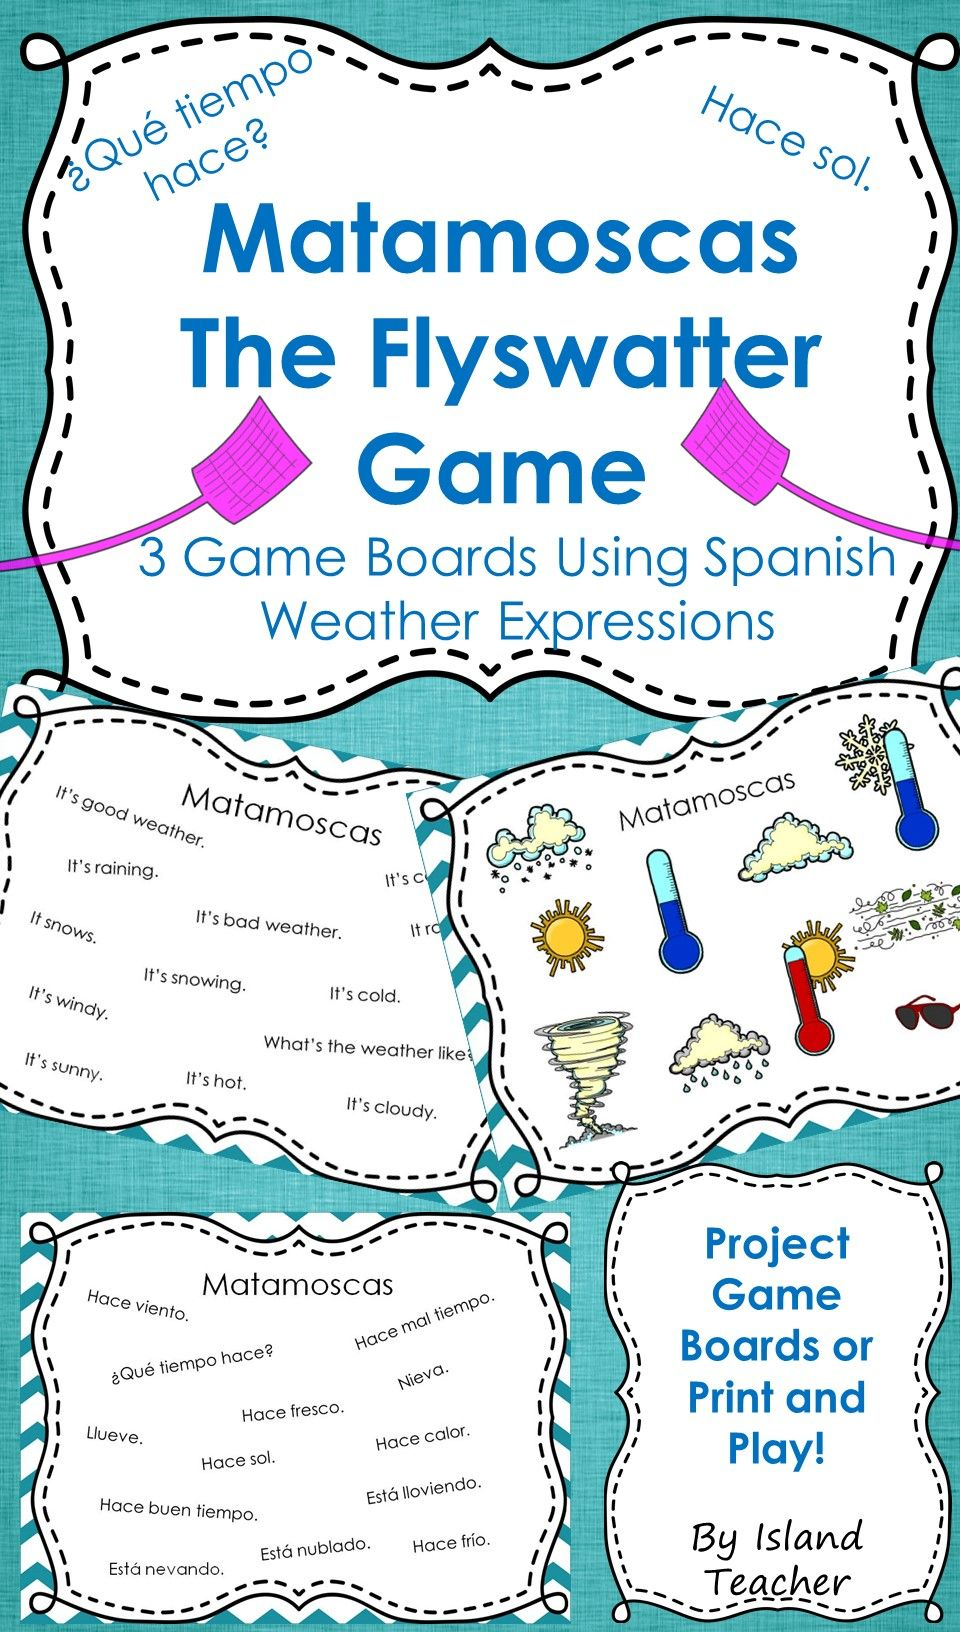 Workbooks weather expressions in spanish worksheets : Spanish Weather Expressions Matamoscas (Flyswatter) Game | Game ...